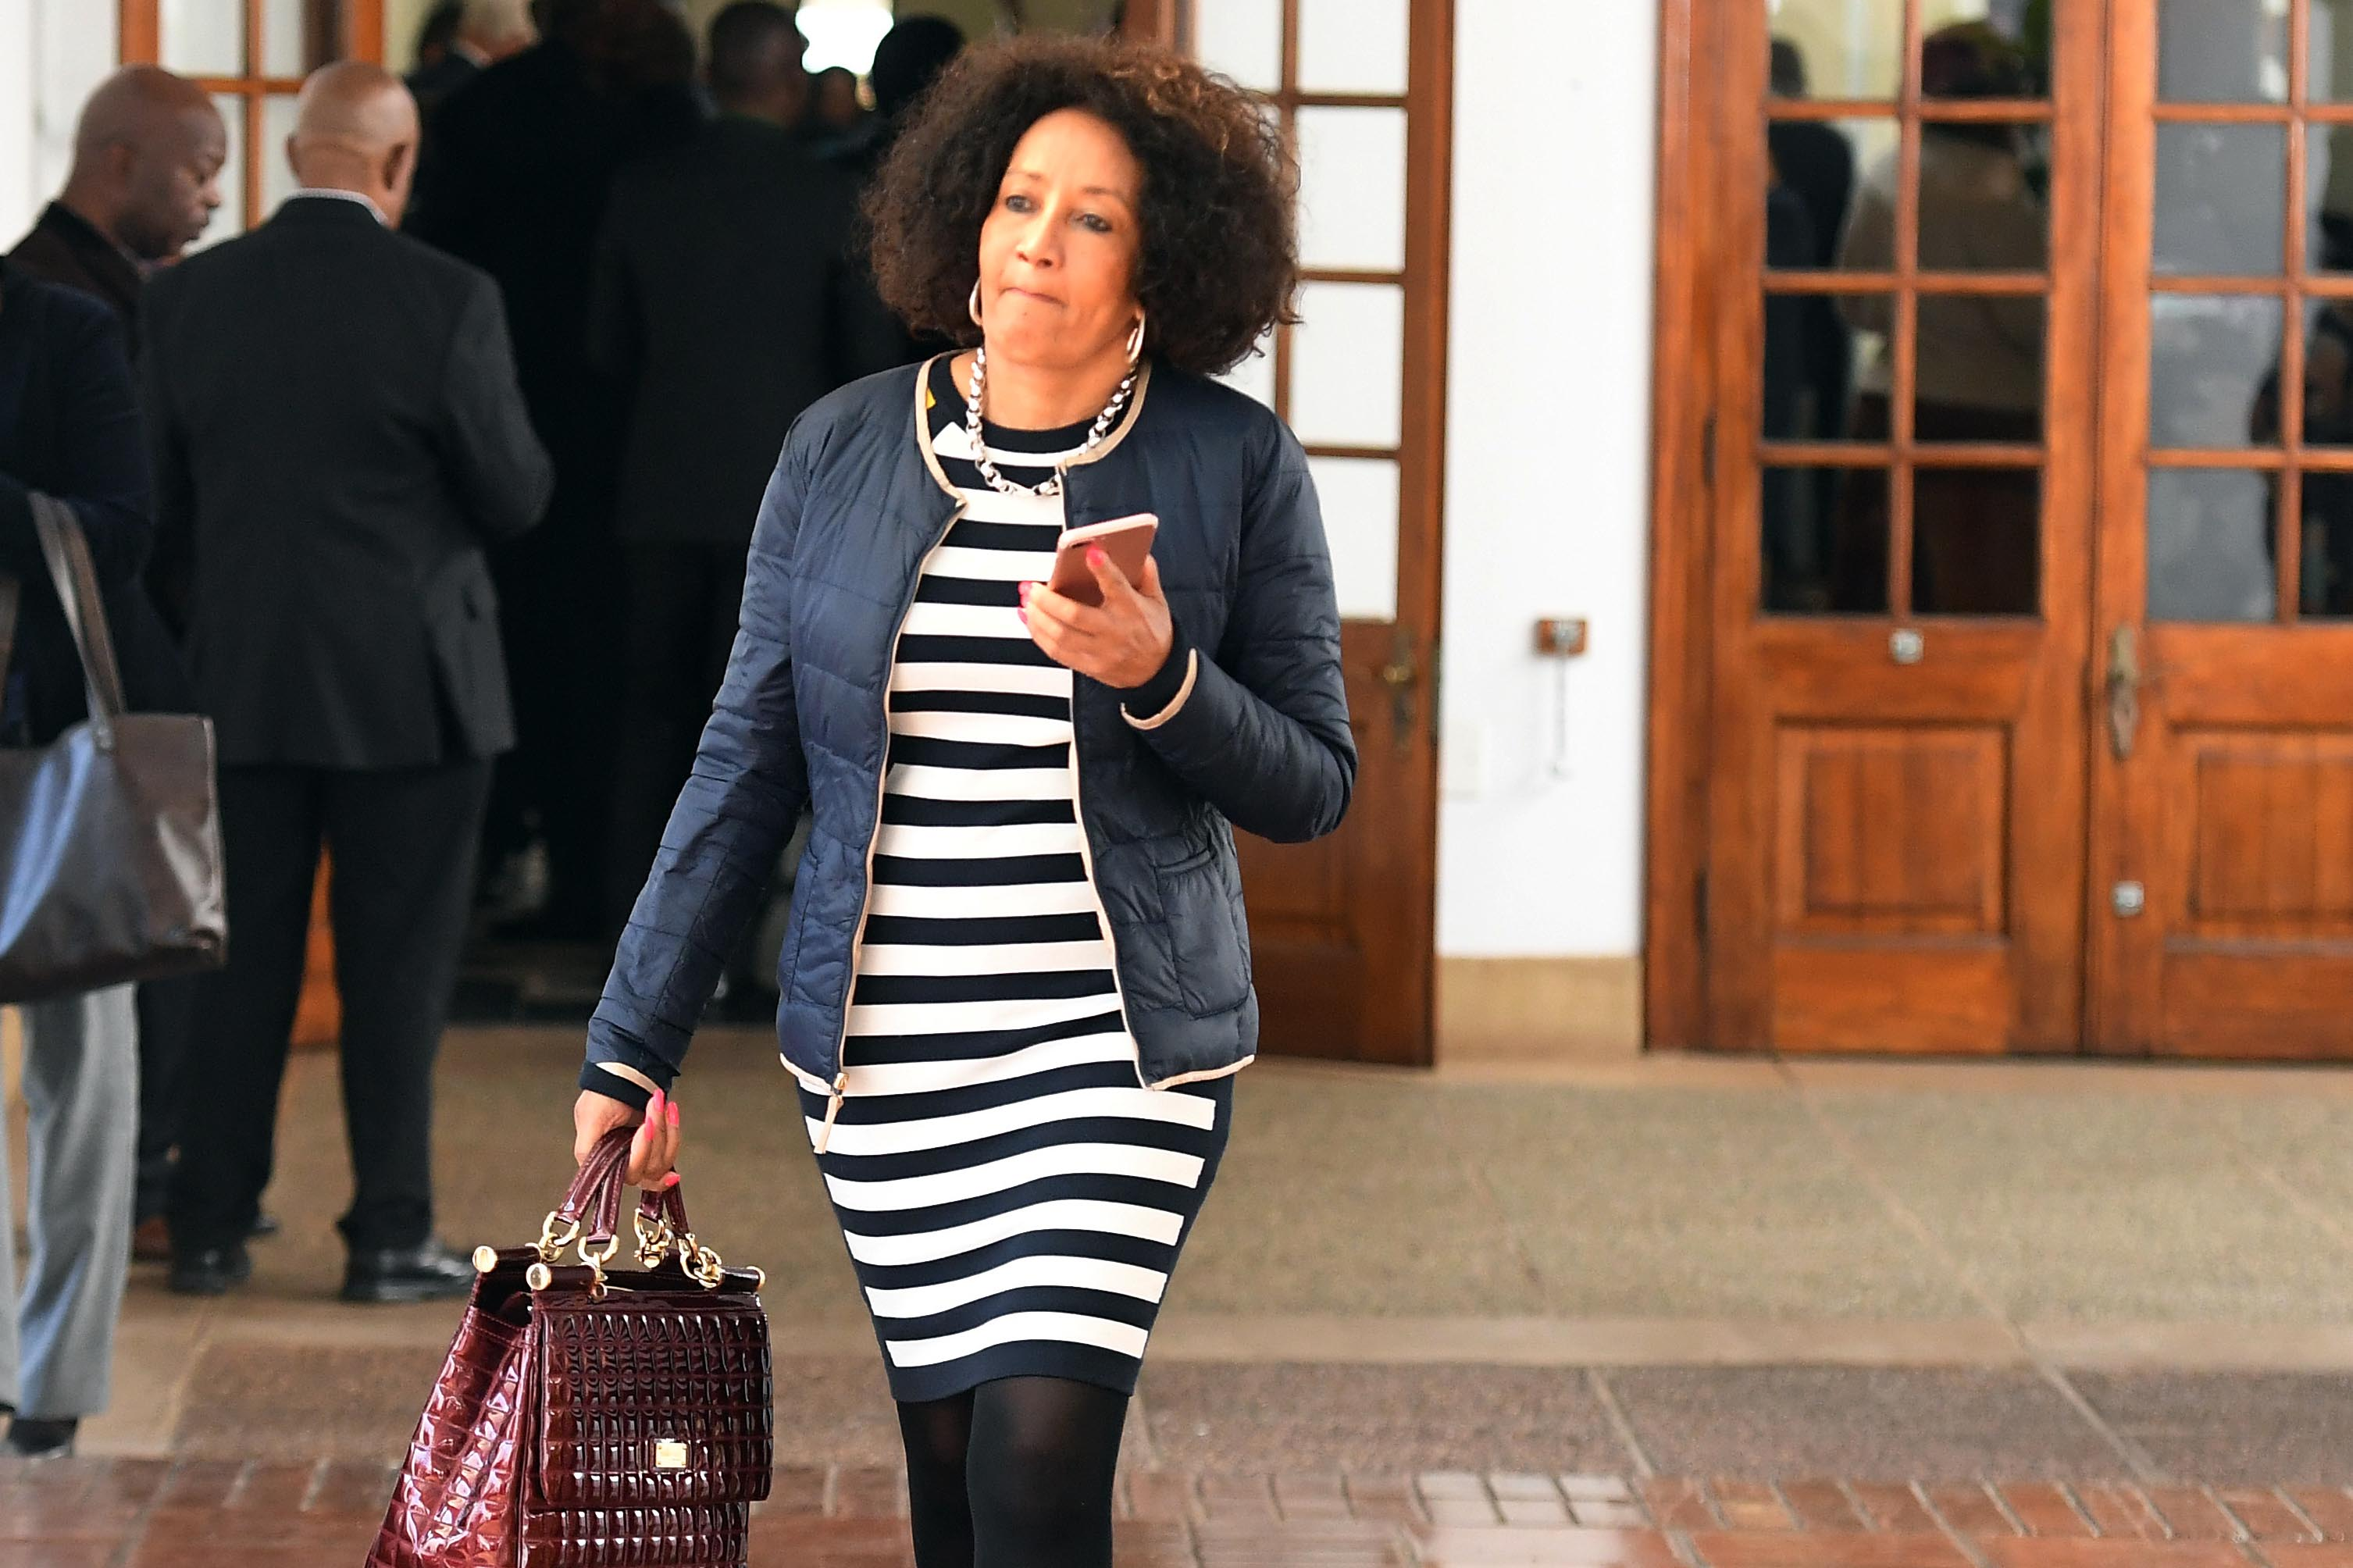 12 Jun 2019: Lindiwe Sisulu during a break in the cabinet lekgotla held at the Sefako Makgatho presidential guesthouse in Pretoria. The lekgotla reviewed government's performance since 1999. (Photograph by Gallo Images/Netwerk24/Felix Dlangamandla)